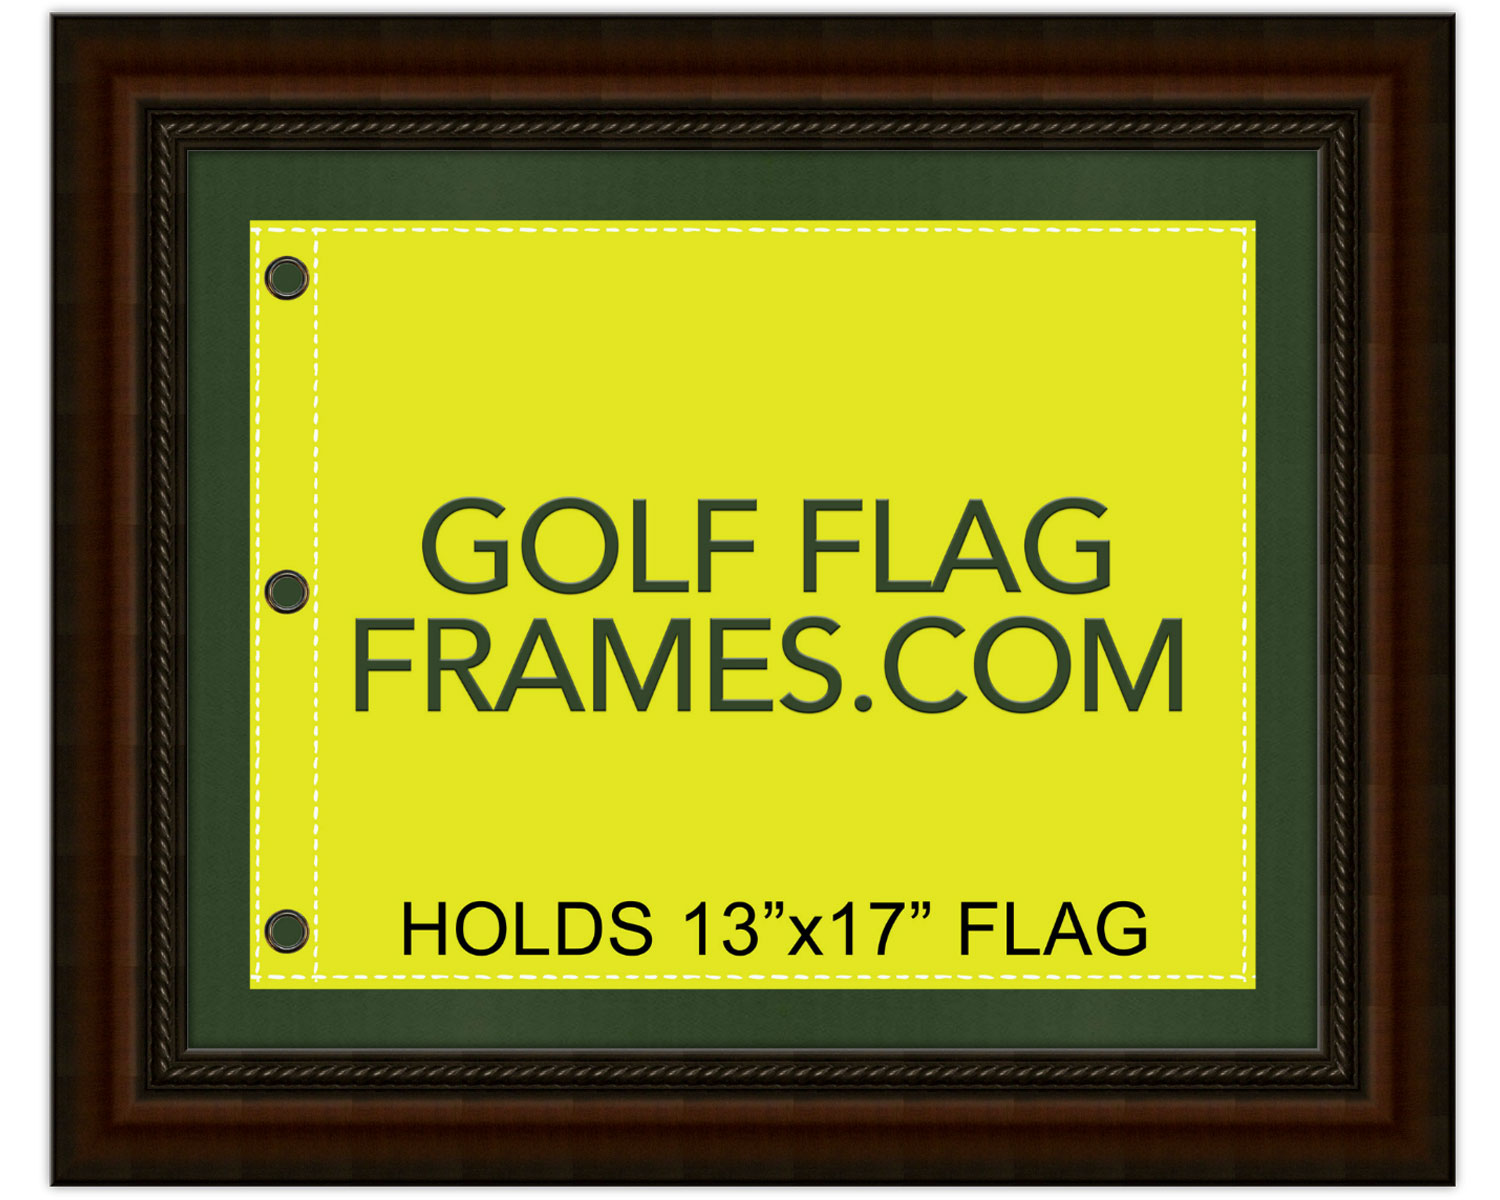 16 215 20 Brown Frame To Hold 13 215 17 Golf Flag Moulding Brn